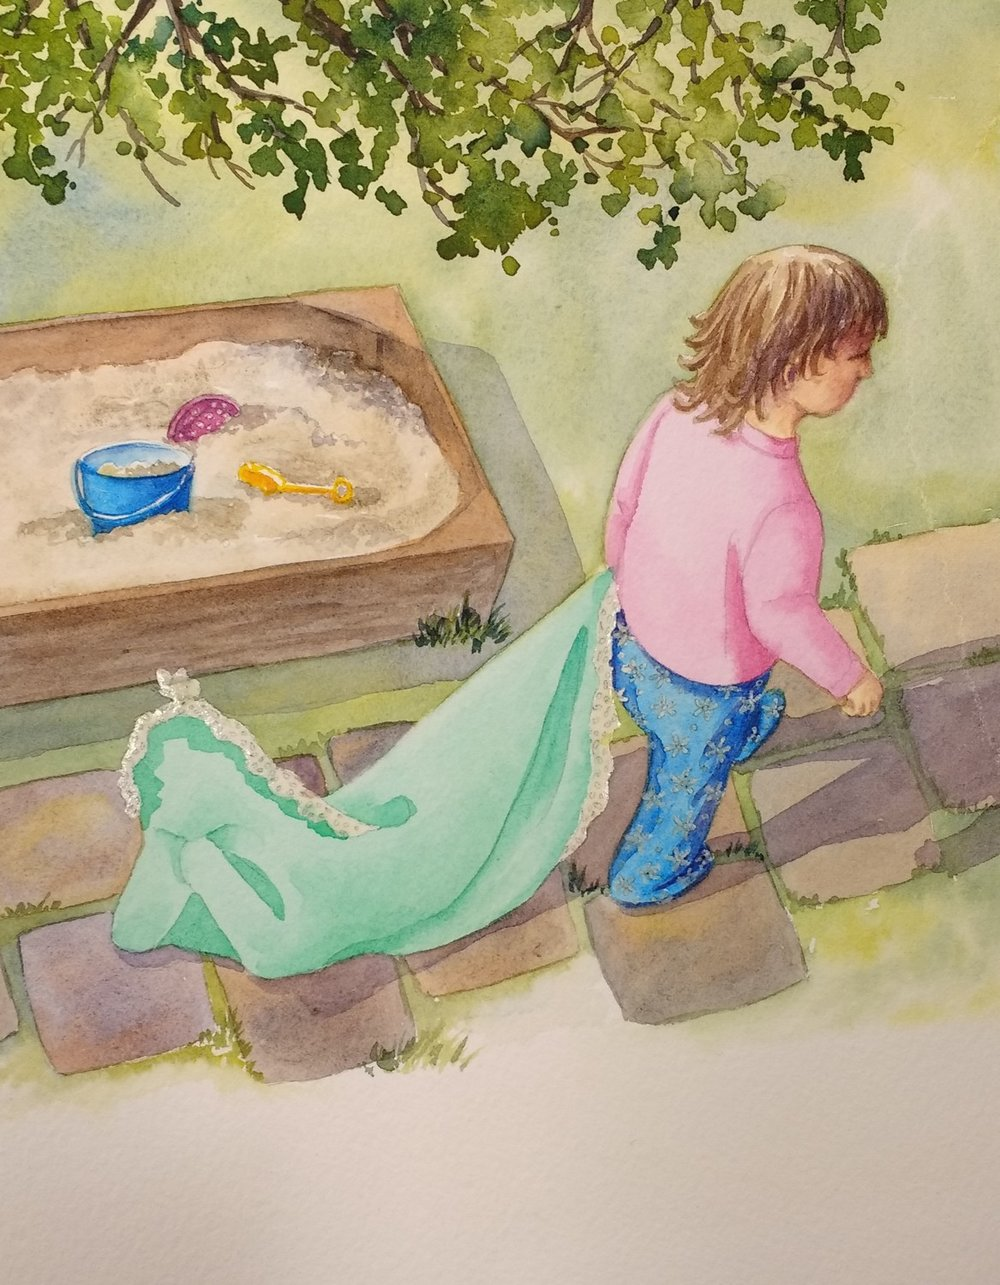 childrens-book-illustration-blankie-outside-step-2-by-Lorraine-Watry.jpg